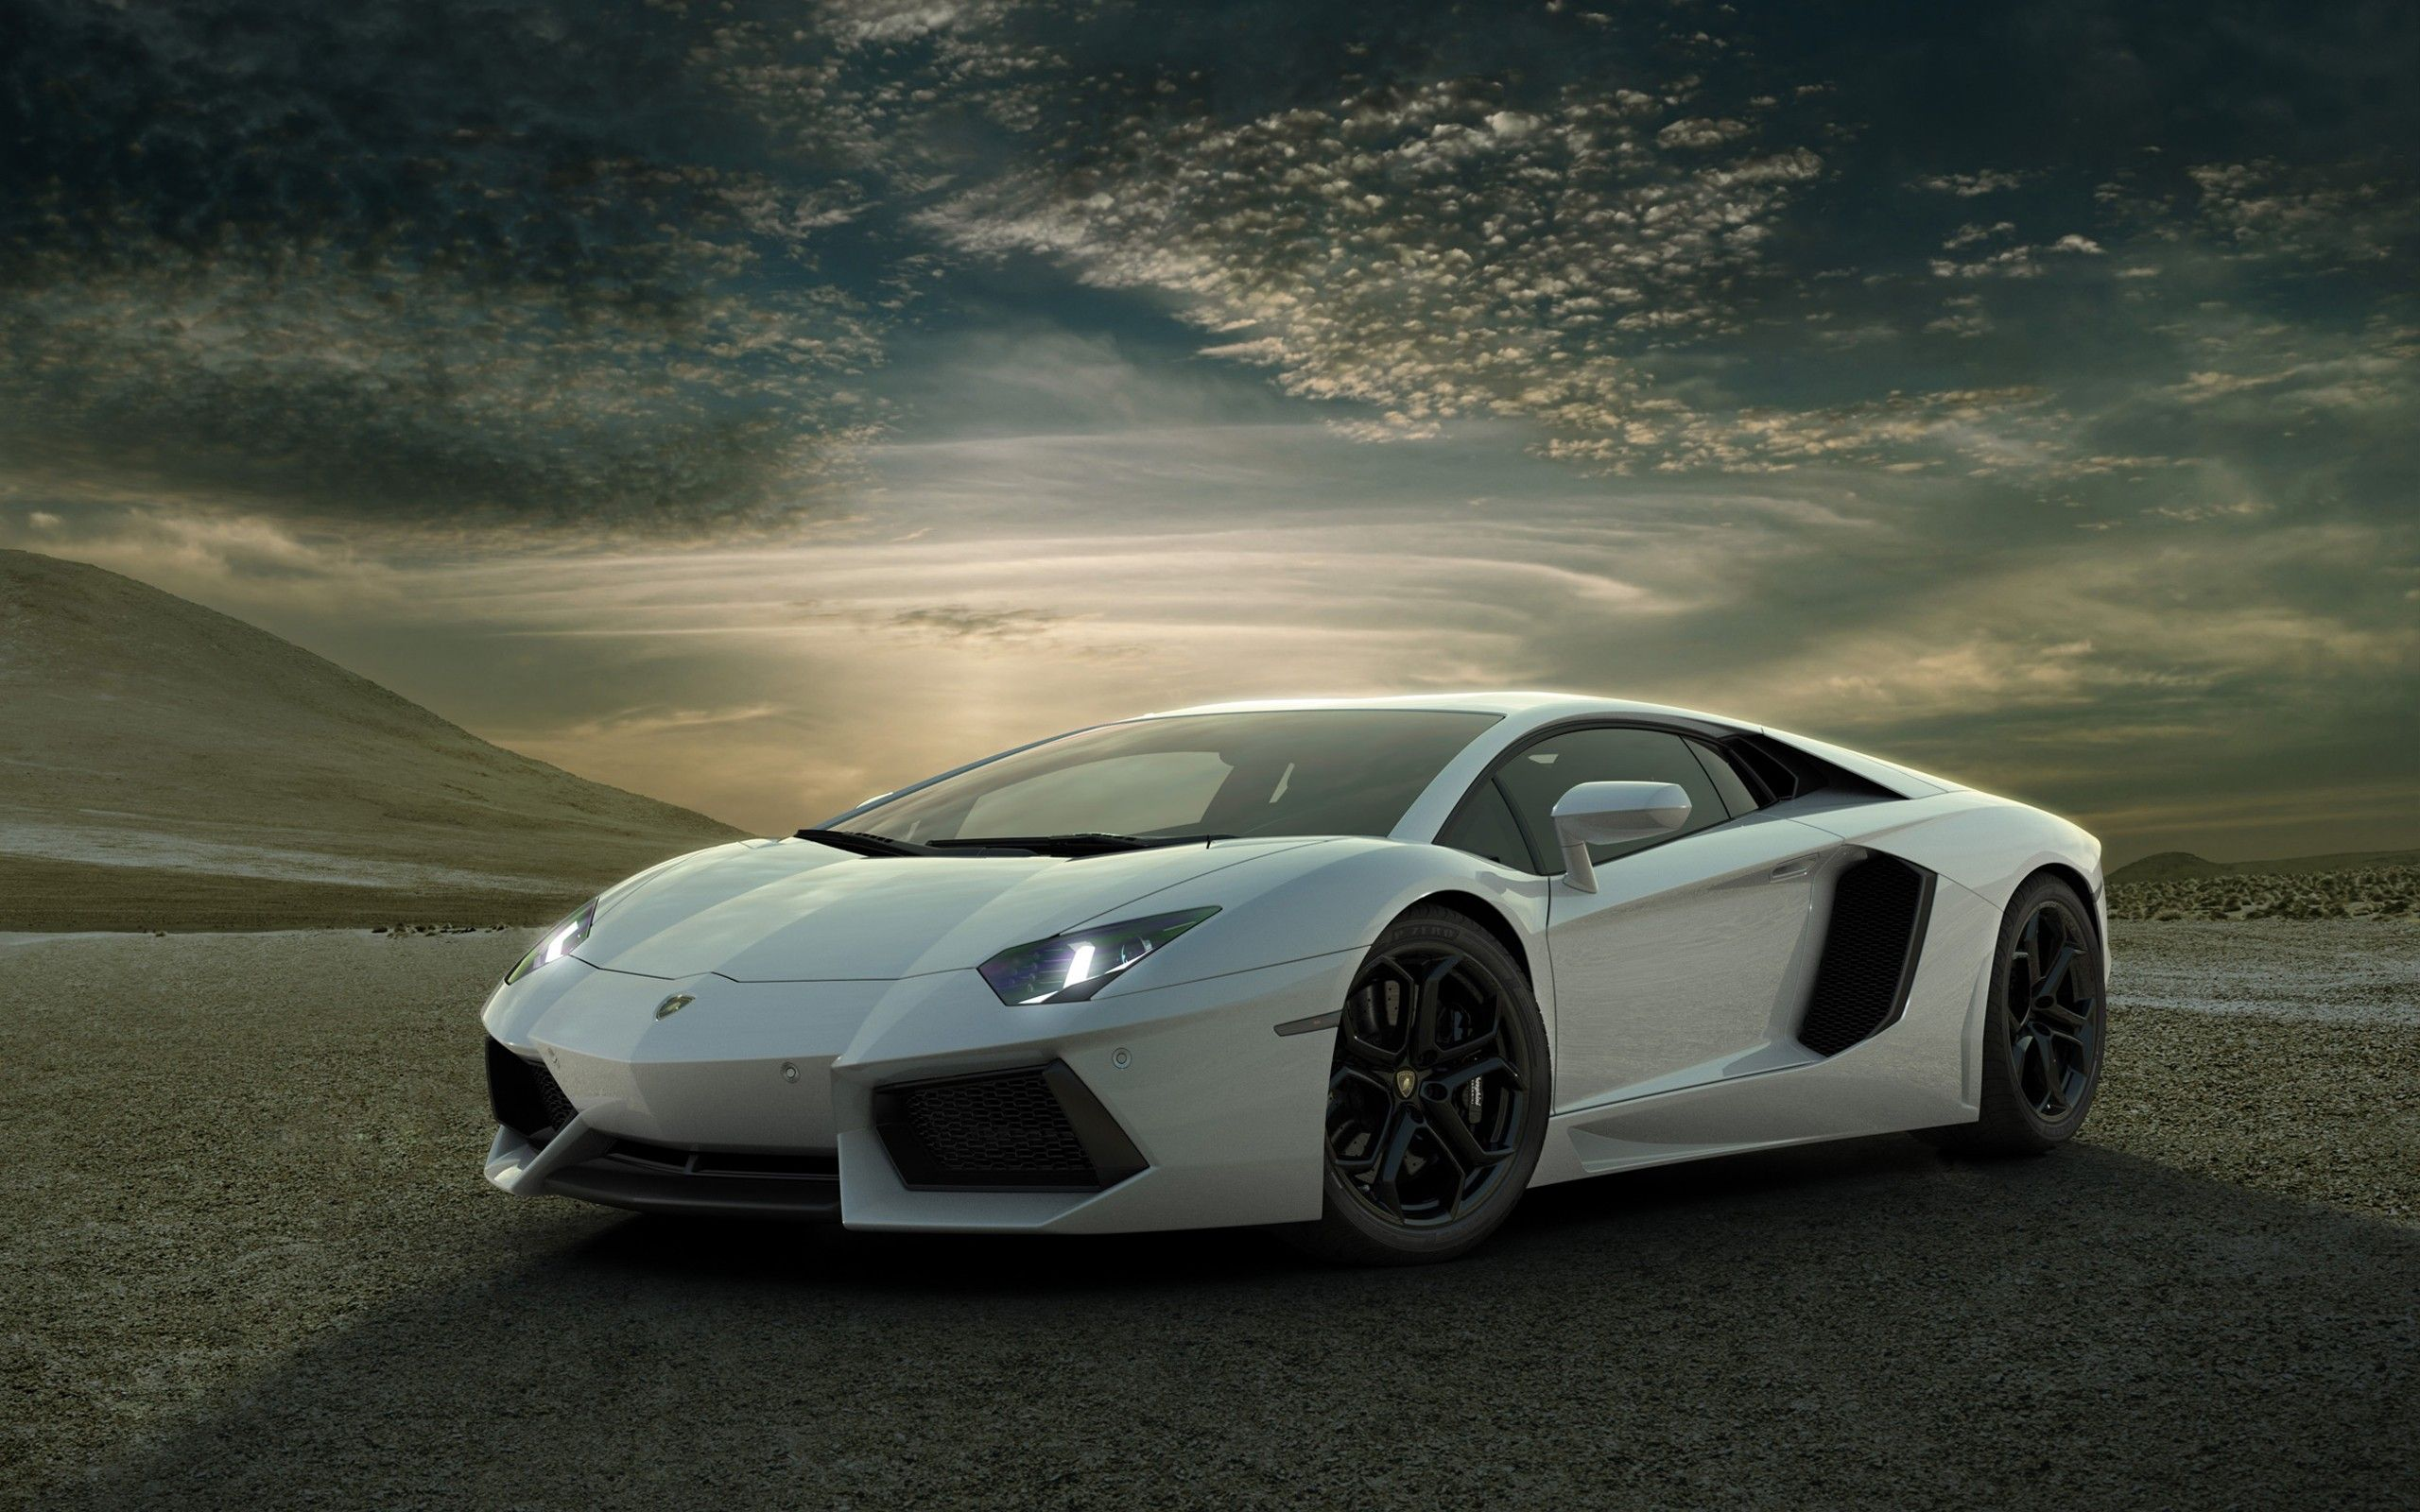 Lamborghini Reventon HD Wallpapers 2560x1600